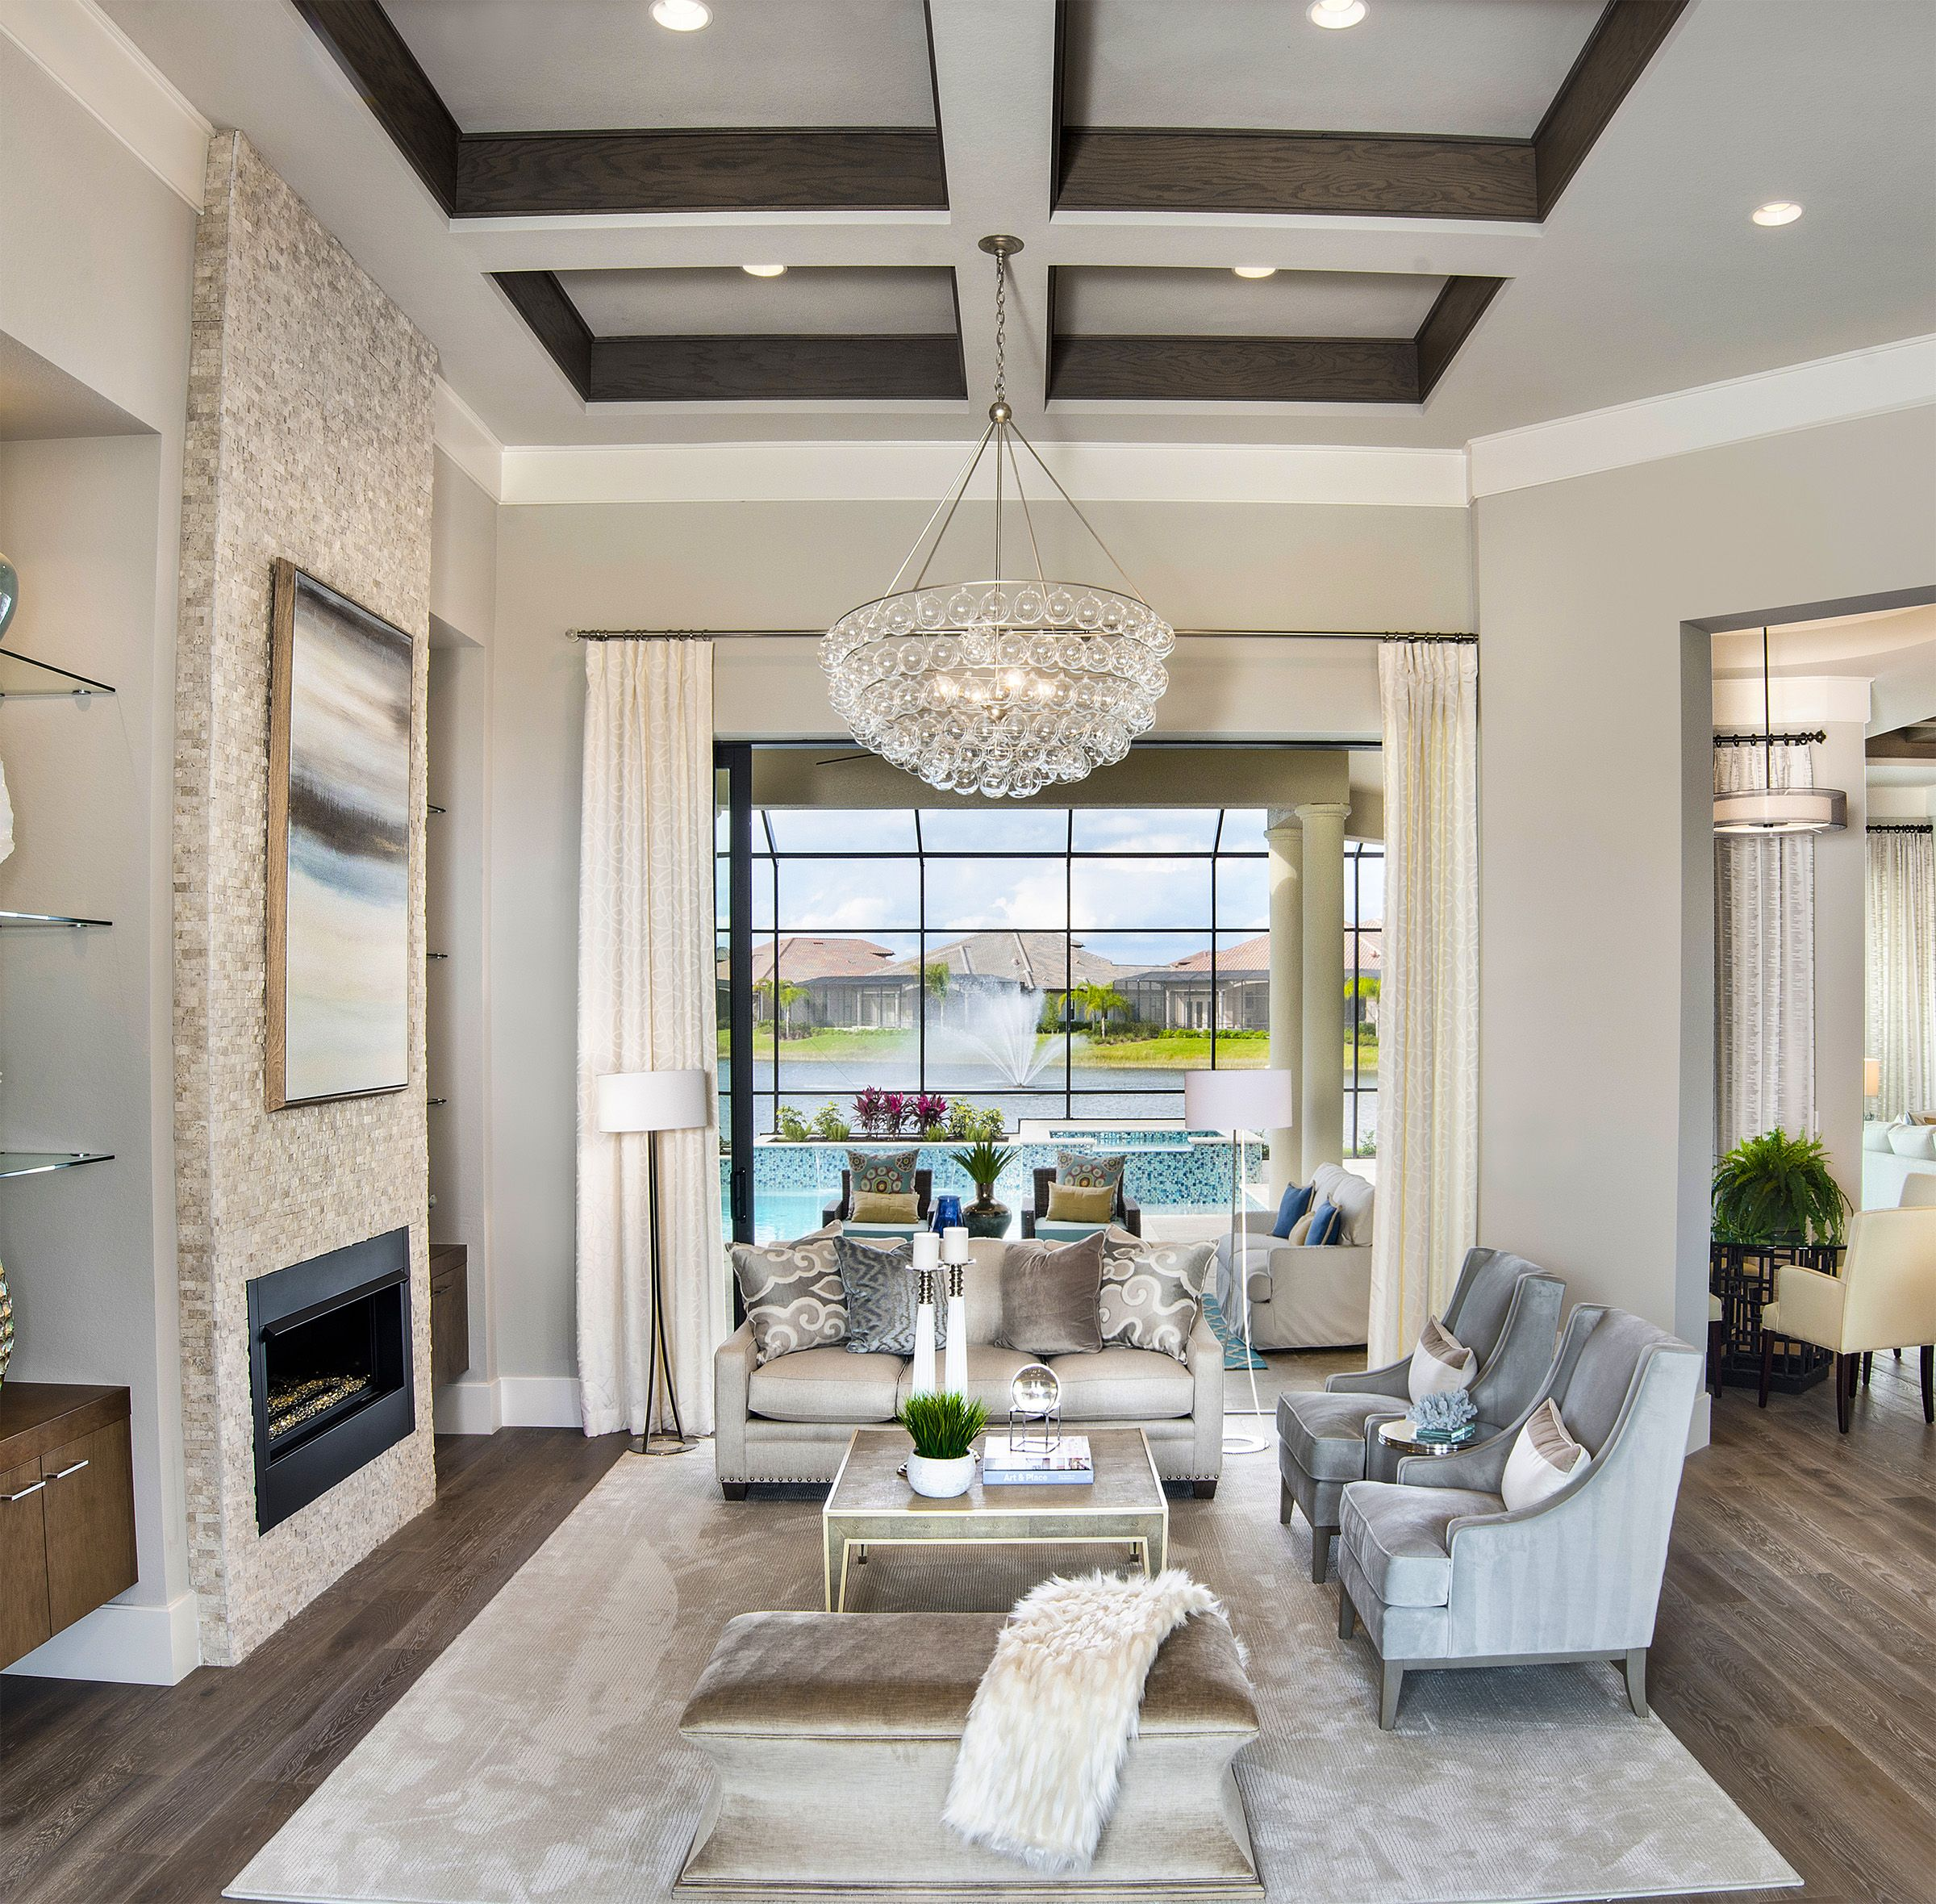 Interior Design Ideas By Beasley Henley